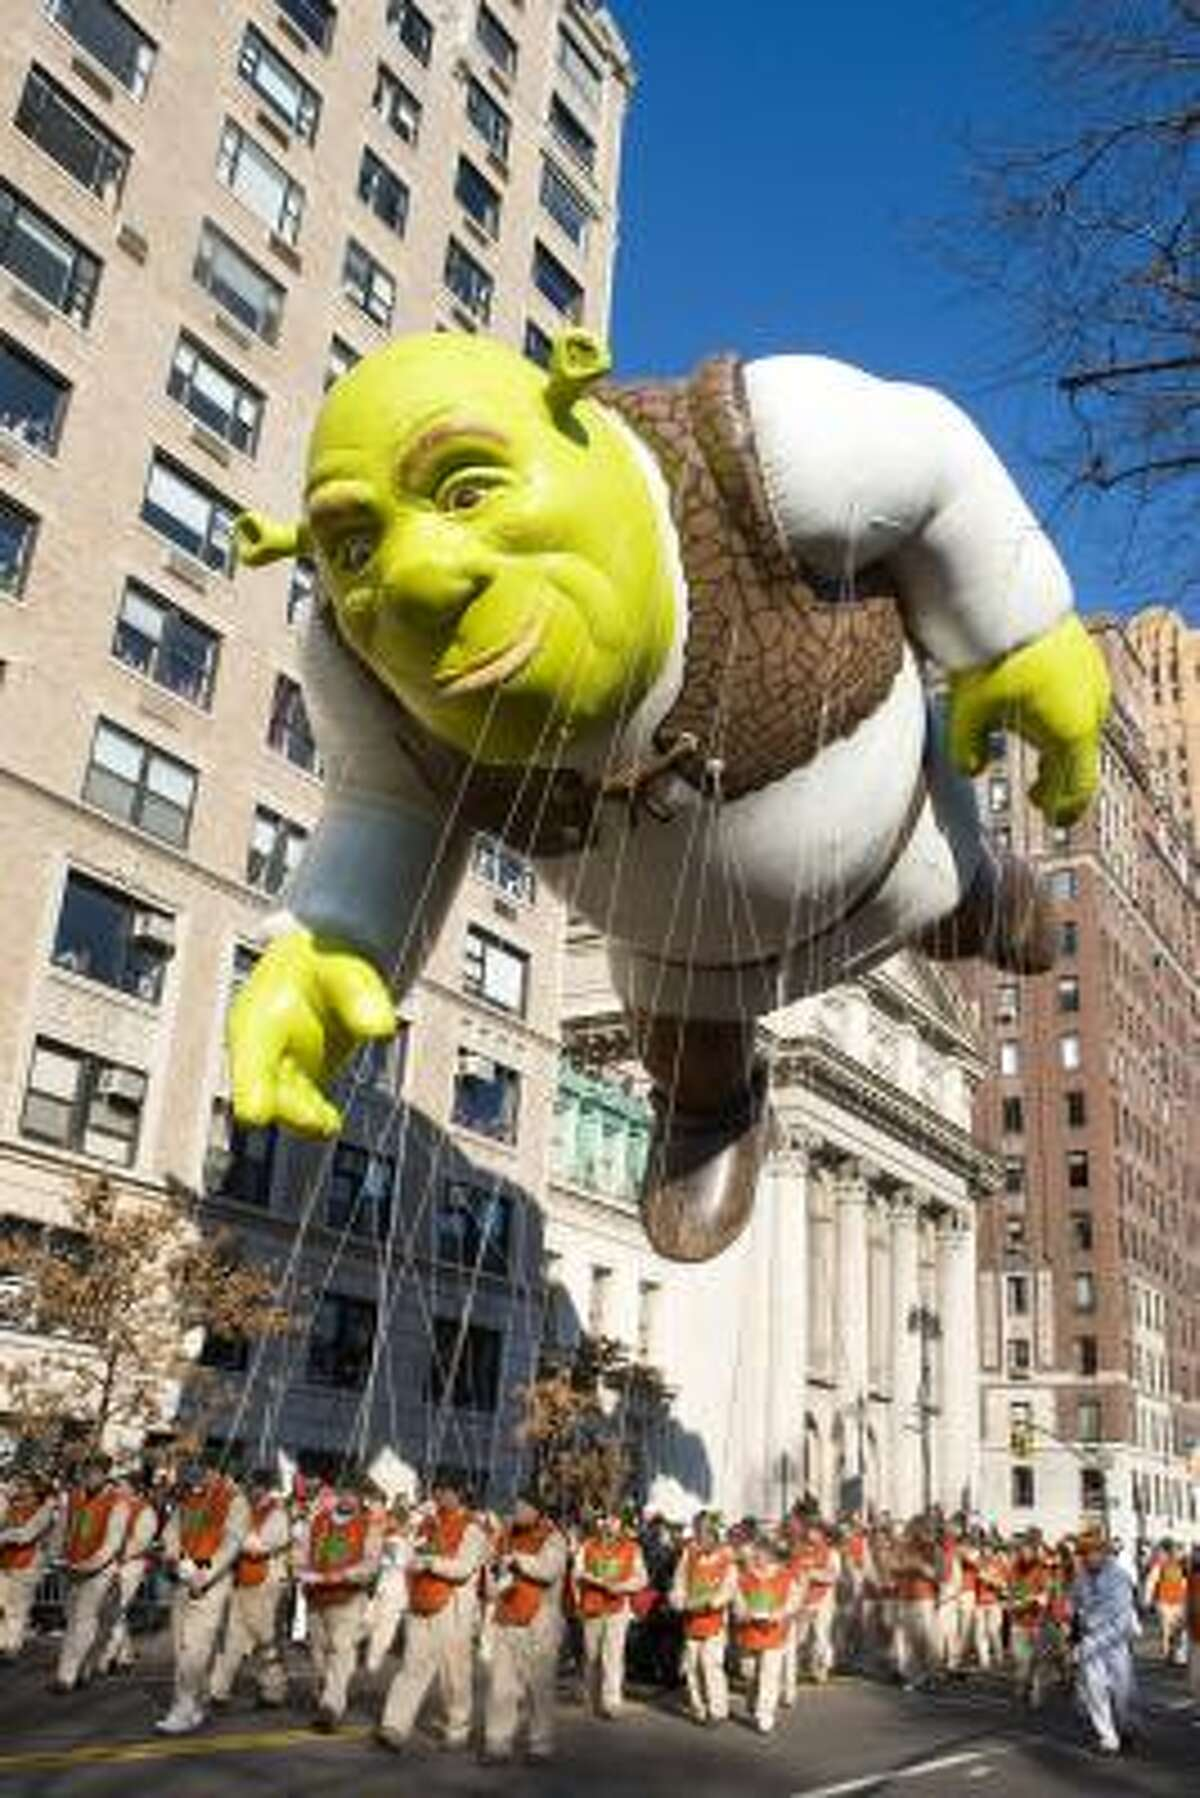 Macy's Thanksgiving Day parade is altering its route from a fairly straight shot to one with several turns. The turns will be a challenge for the handlers of the giant balloons, which measure several stories tall and are filled with thousands of cubic feet of helium.